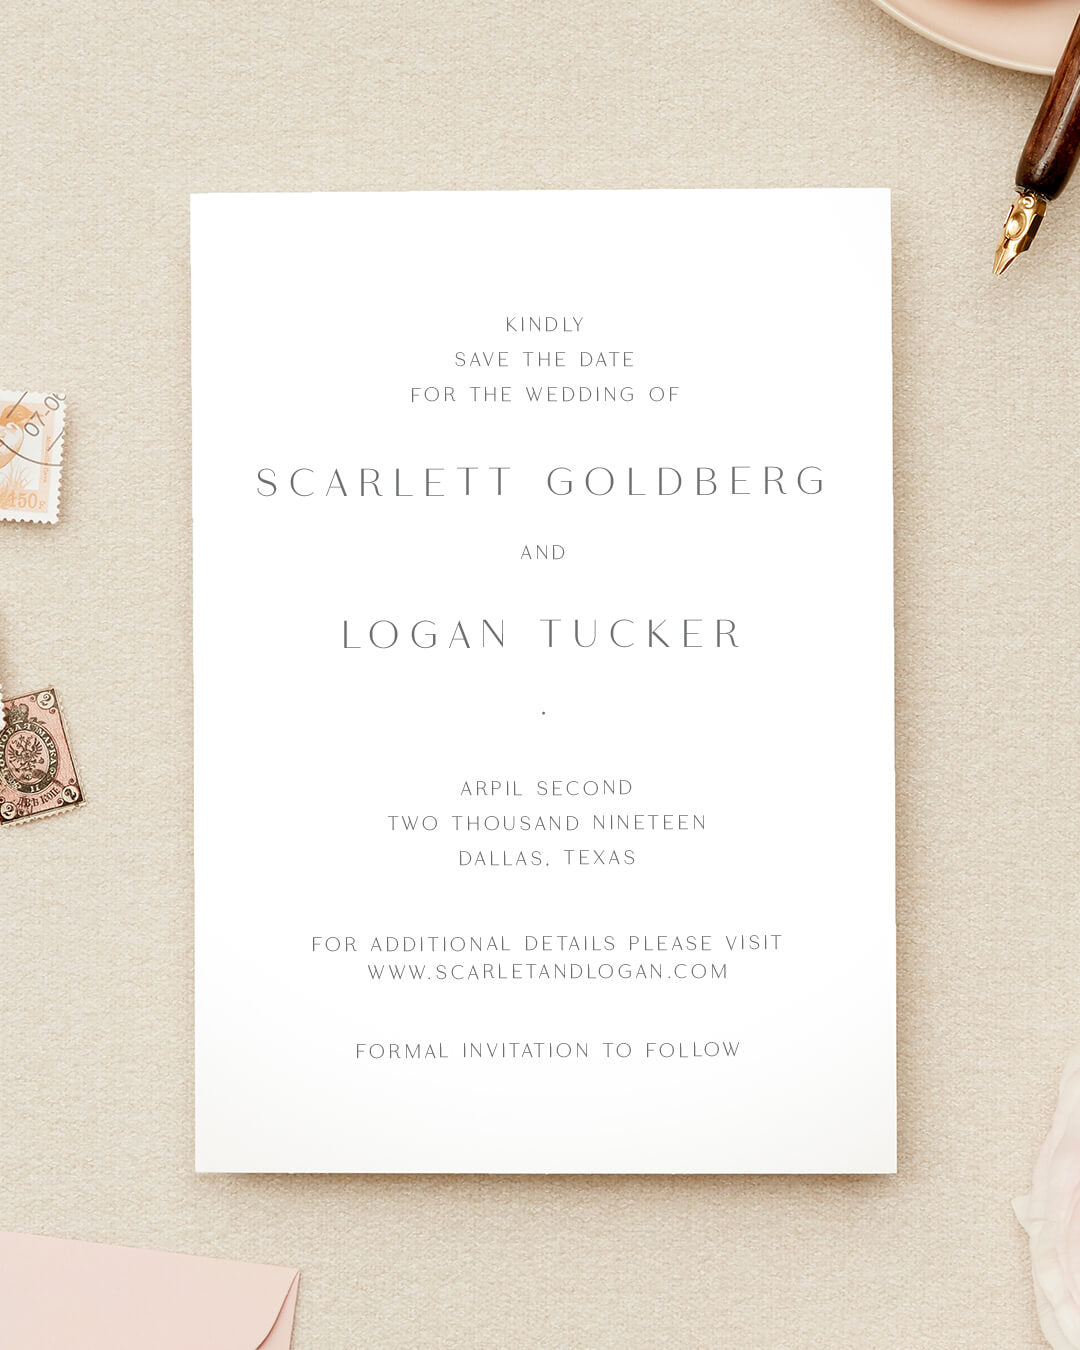 Wedding Save The Dates | The Scarlett